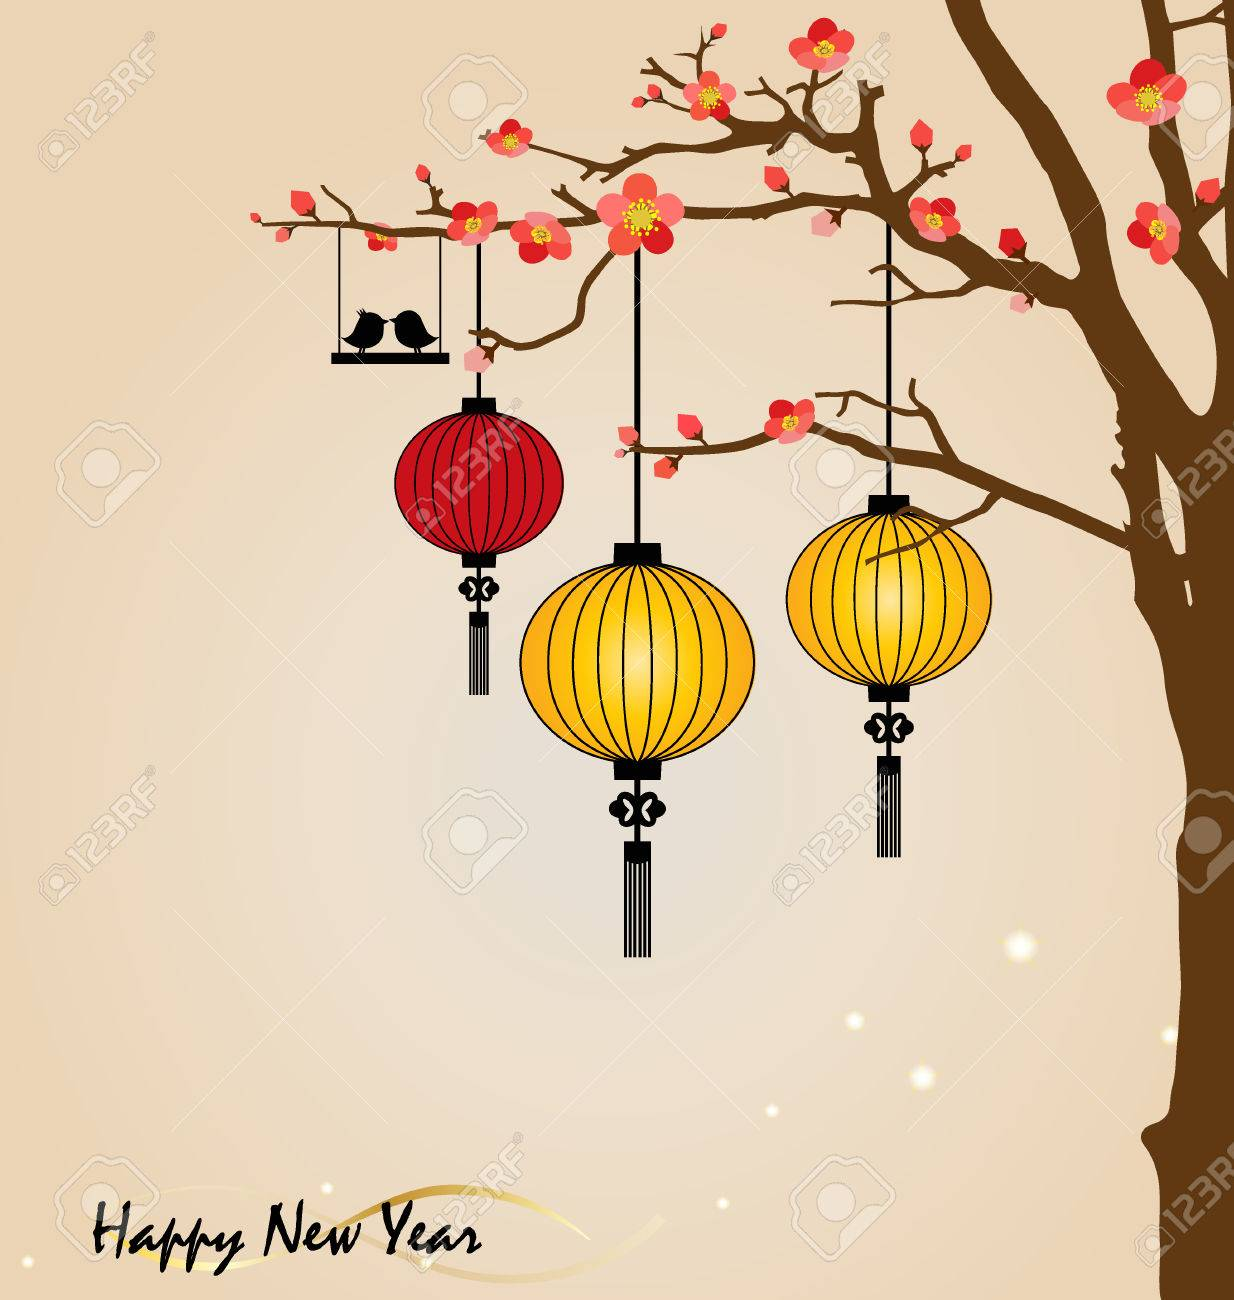 Big Traditional Chinese Lanterns Will Bring Good Luck And Peace Royalty Free Cliparts Vectors And Stock Illustration Image 25209704